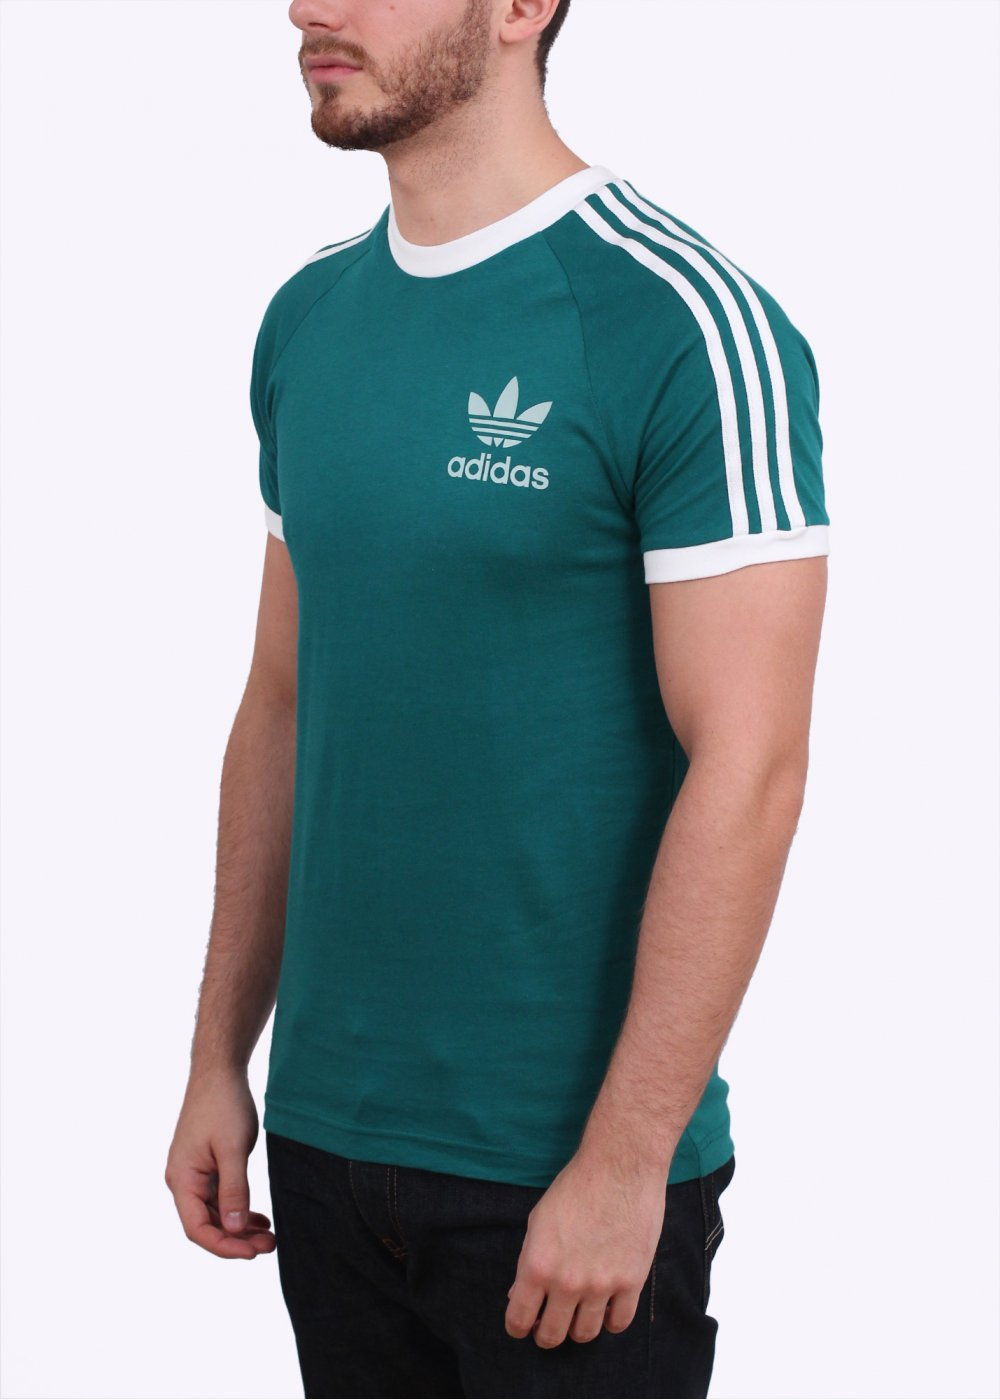 Sport Essential Tee - Emerald Green / White